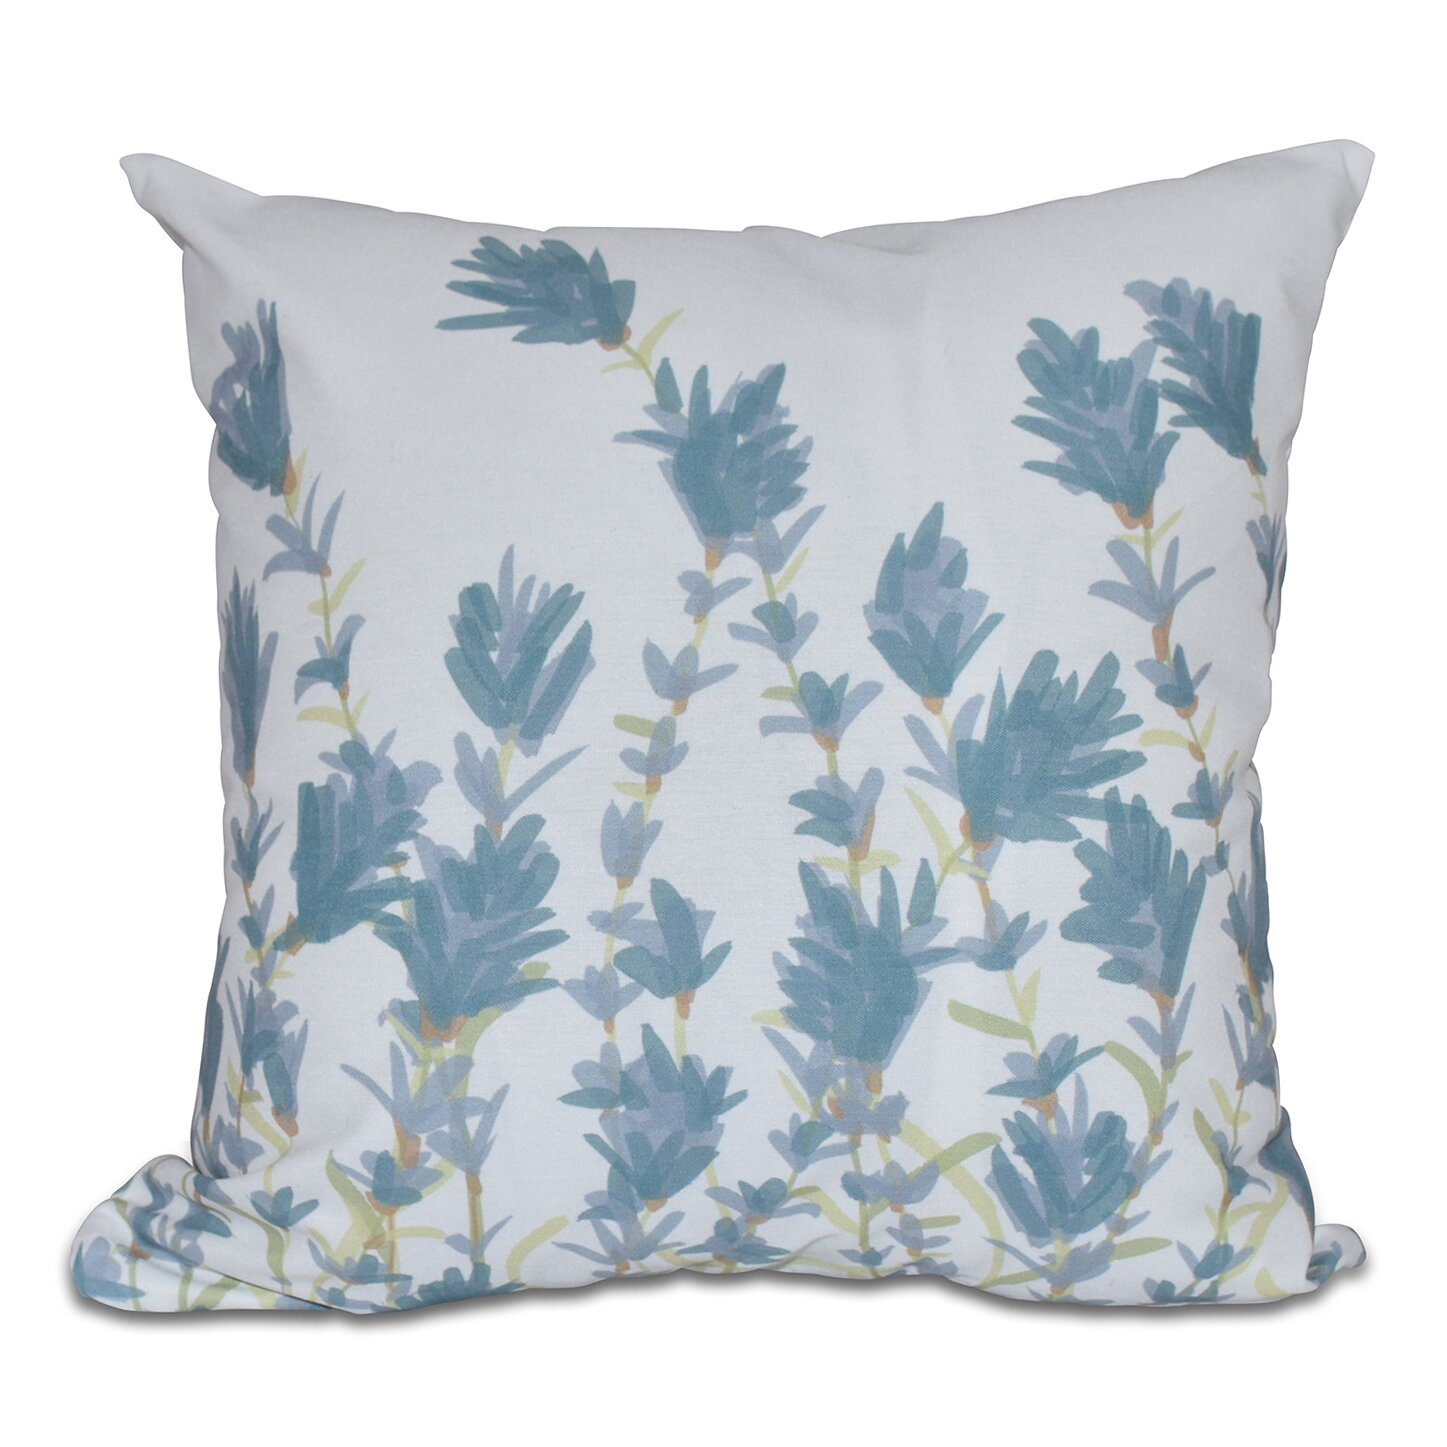 Lilac Floral Throw Pillow : Alcott Hill Orchard Lane Lavender Floral Throw Pillow & Reviews Wayfair.ca